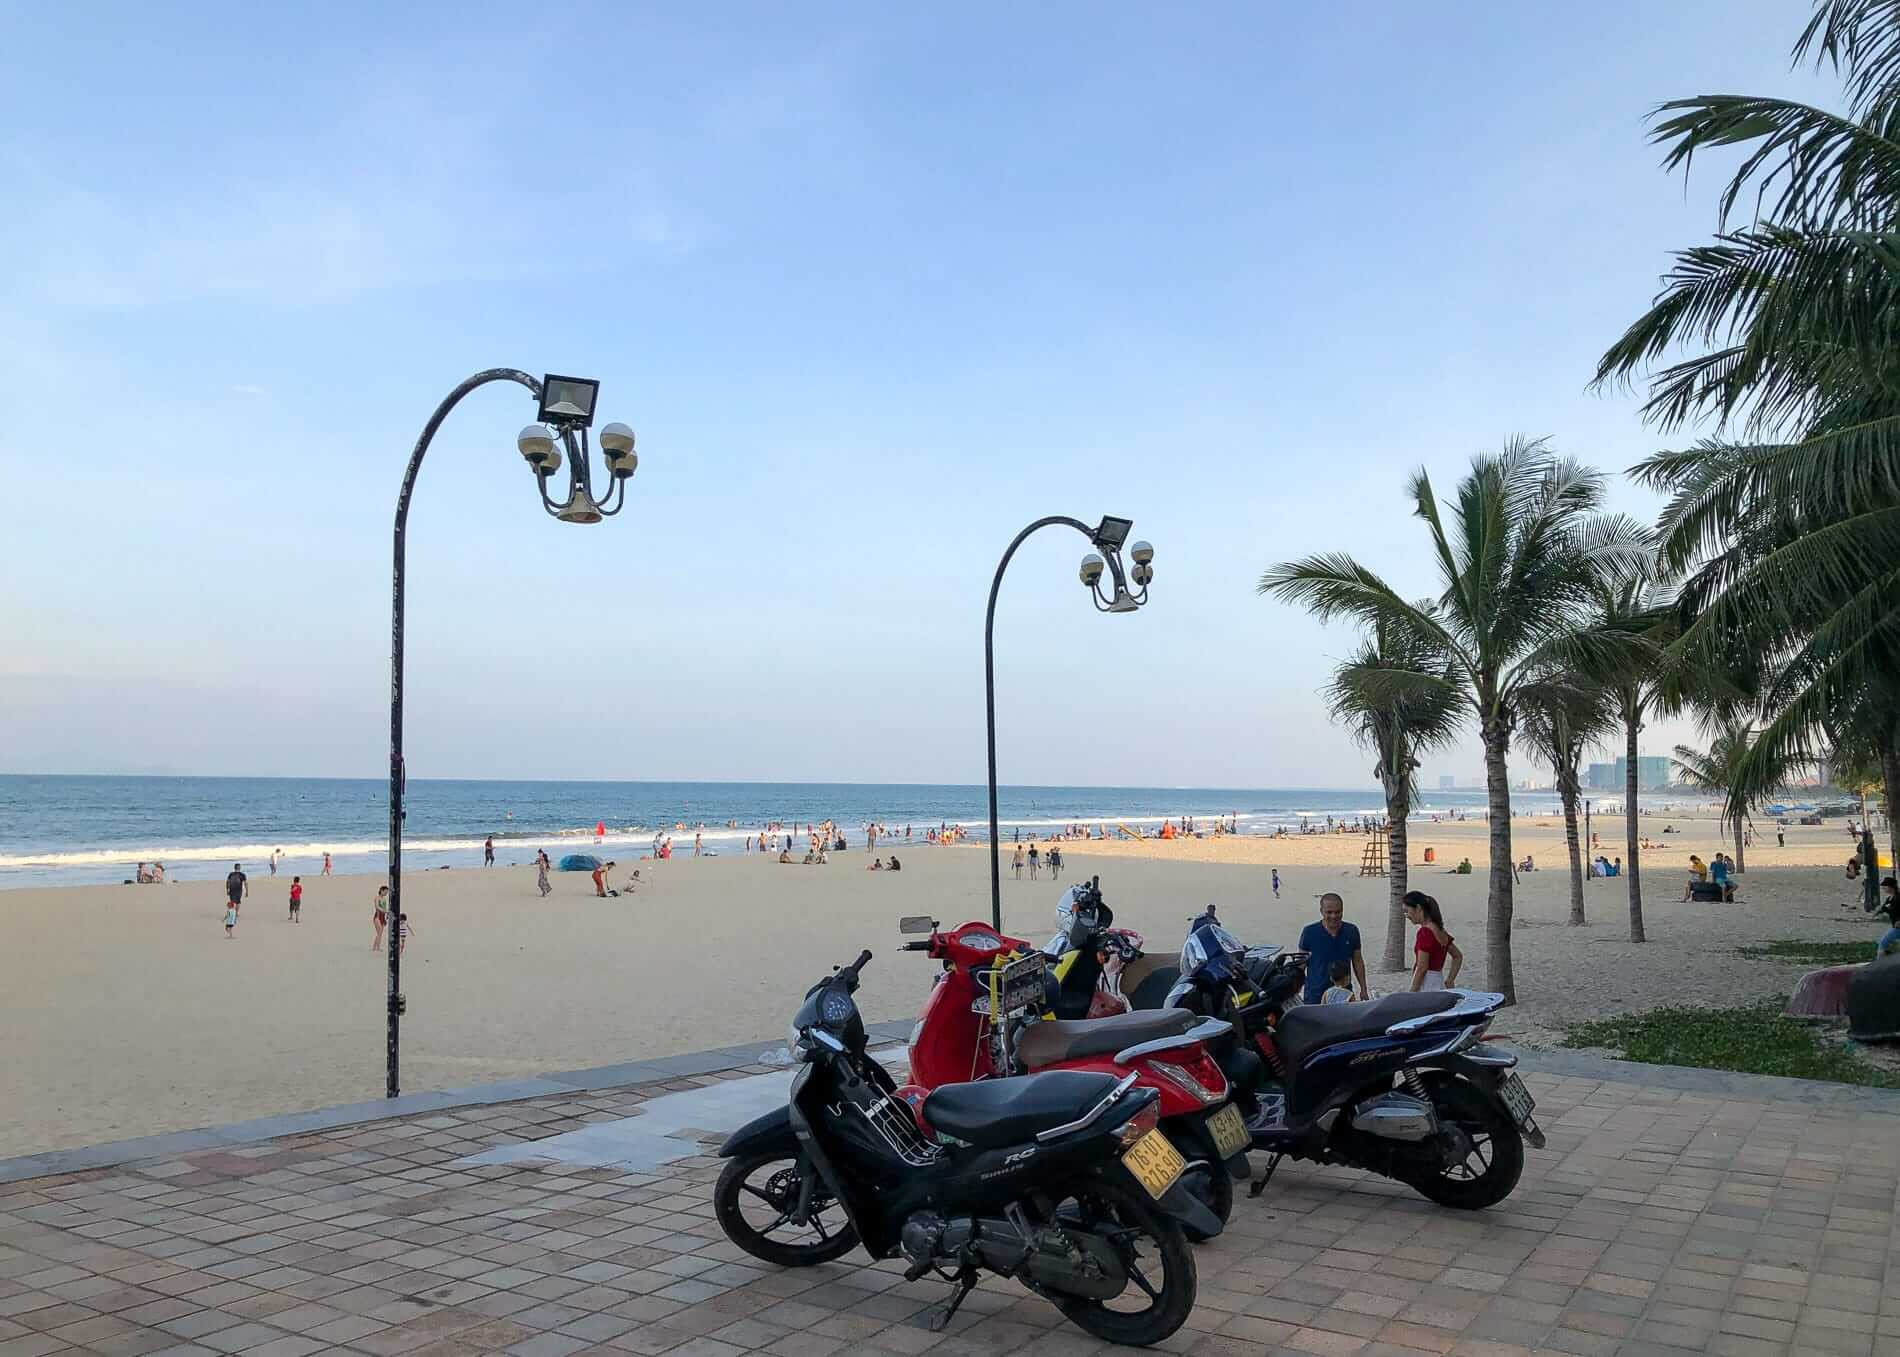 Motorcycles illegally parked at My Khe Beach